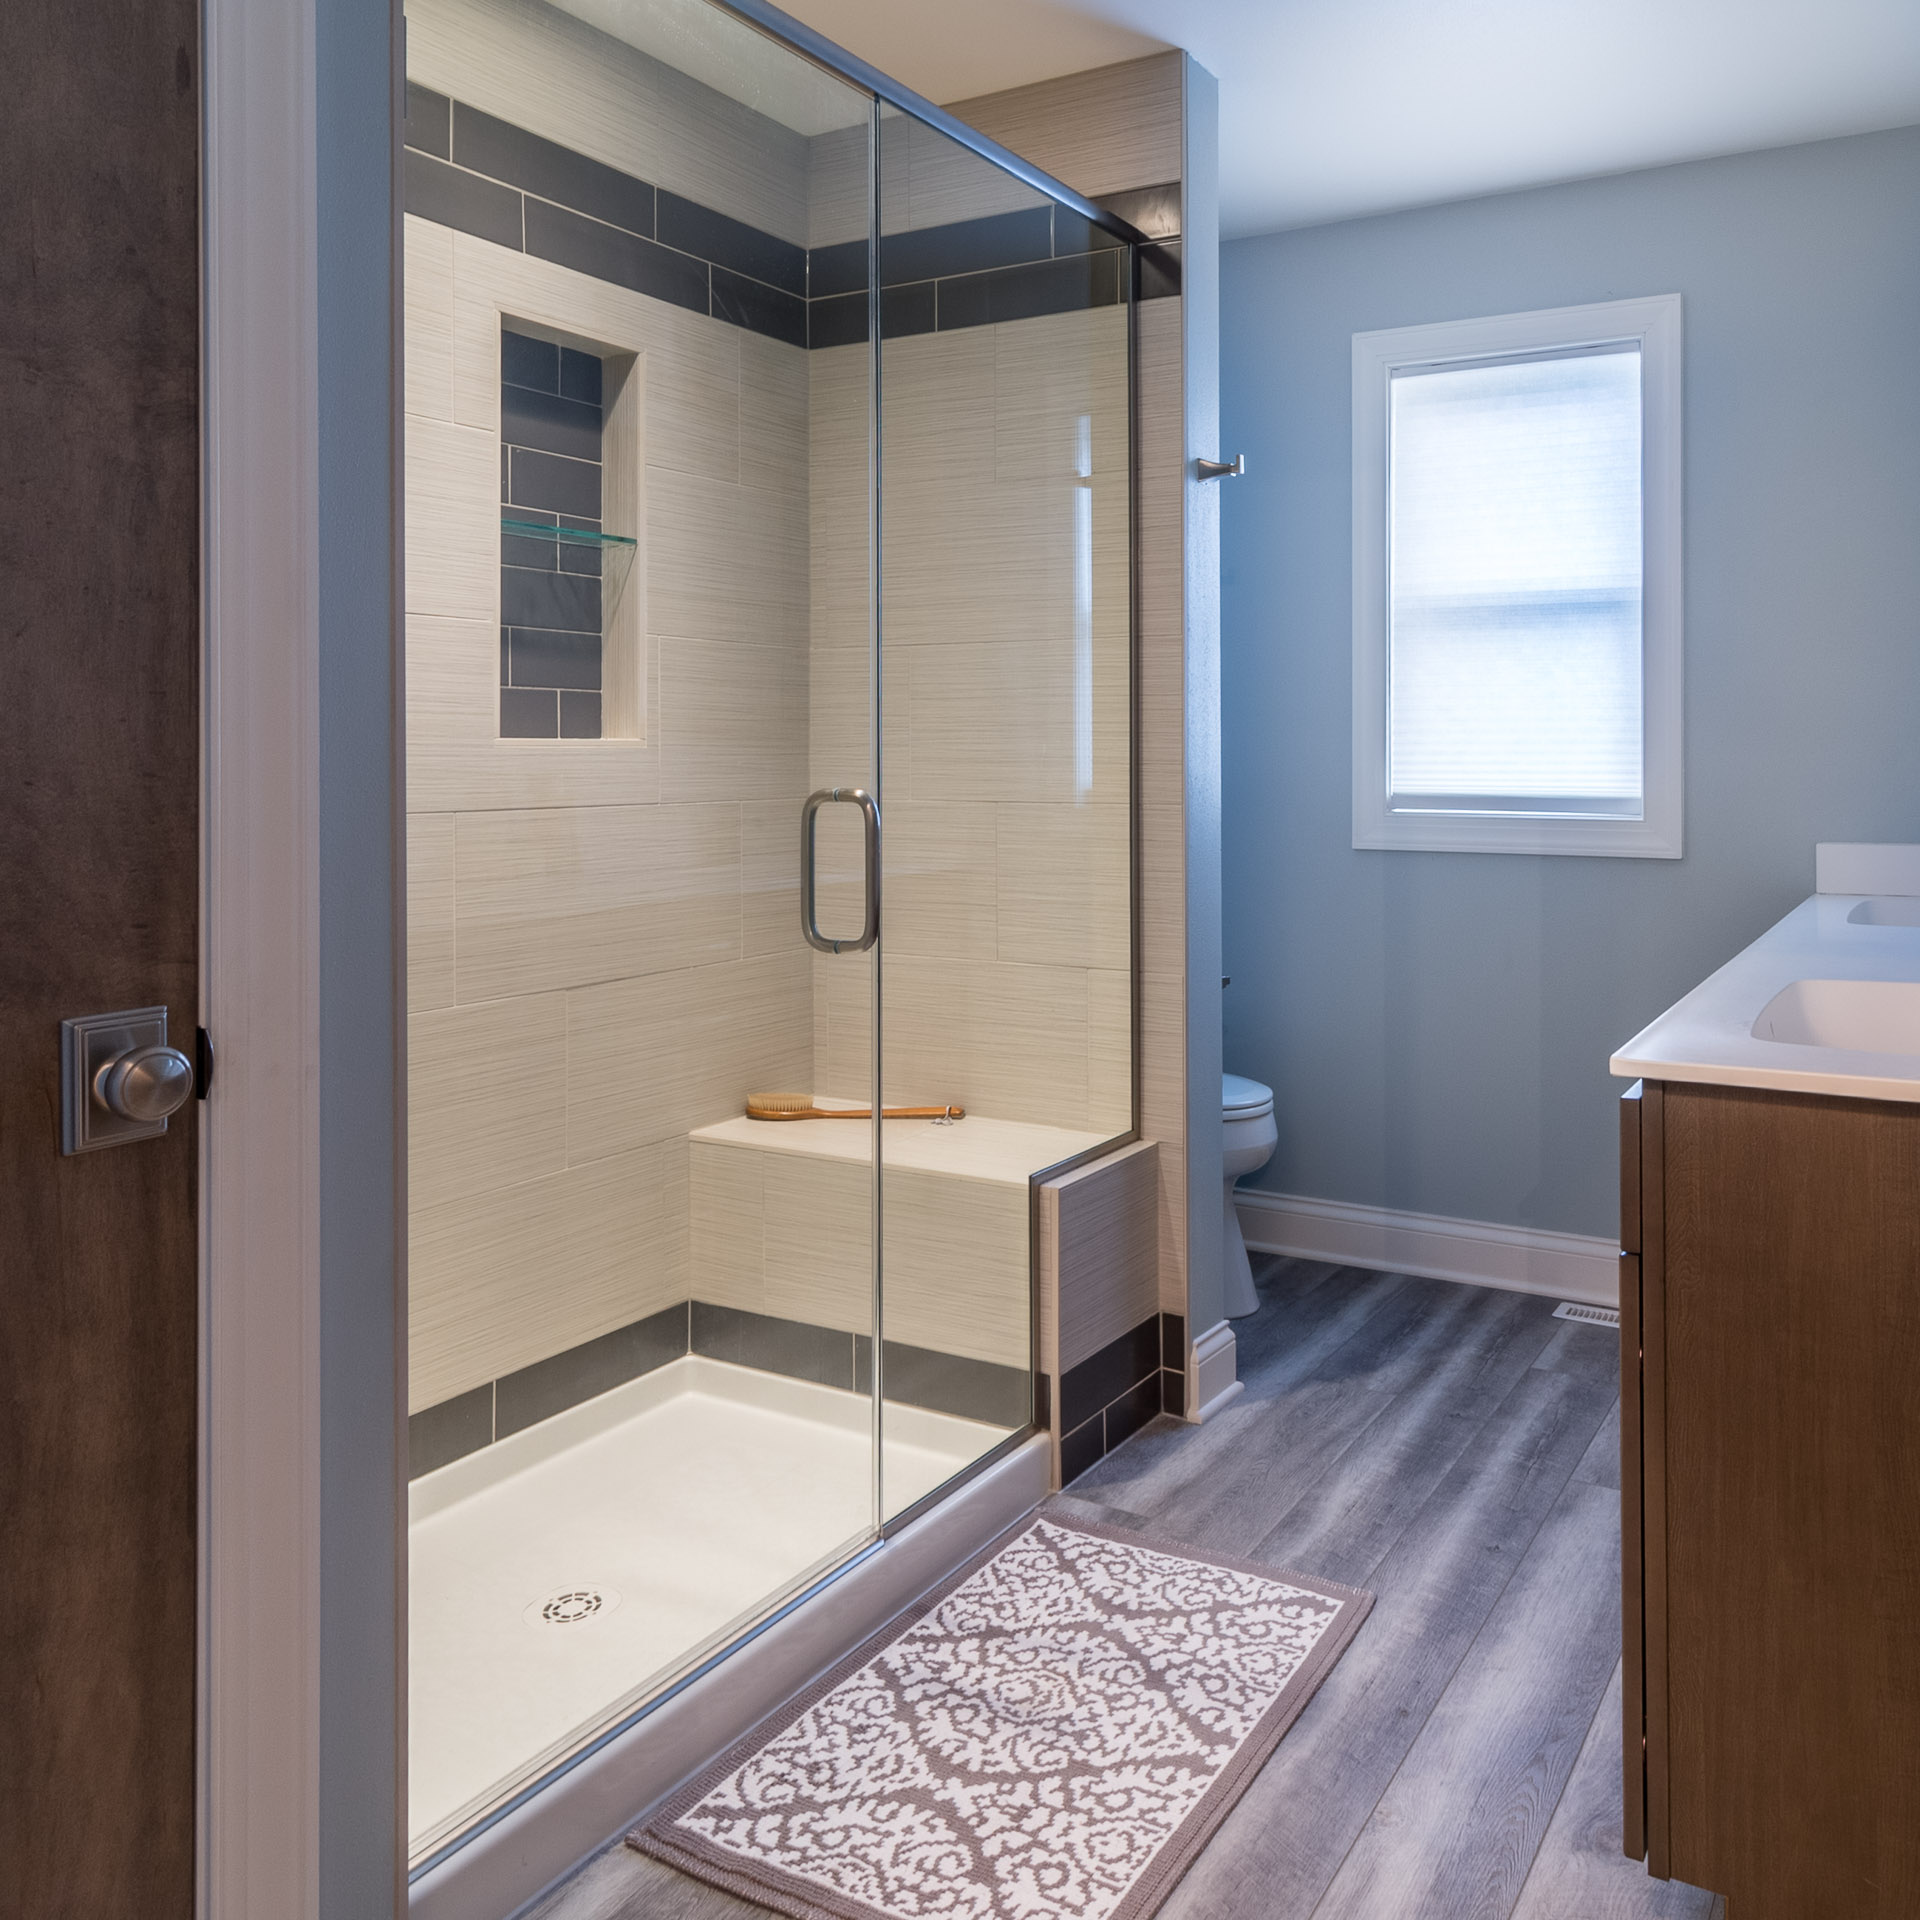 Master Suire Bathroom Remodeling with Walk-in Shower